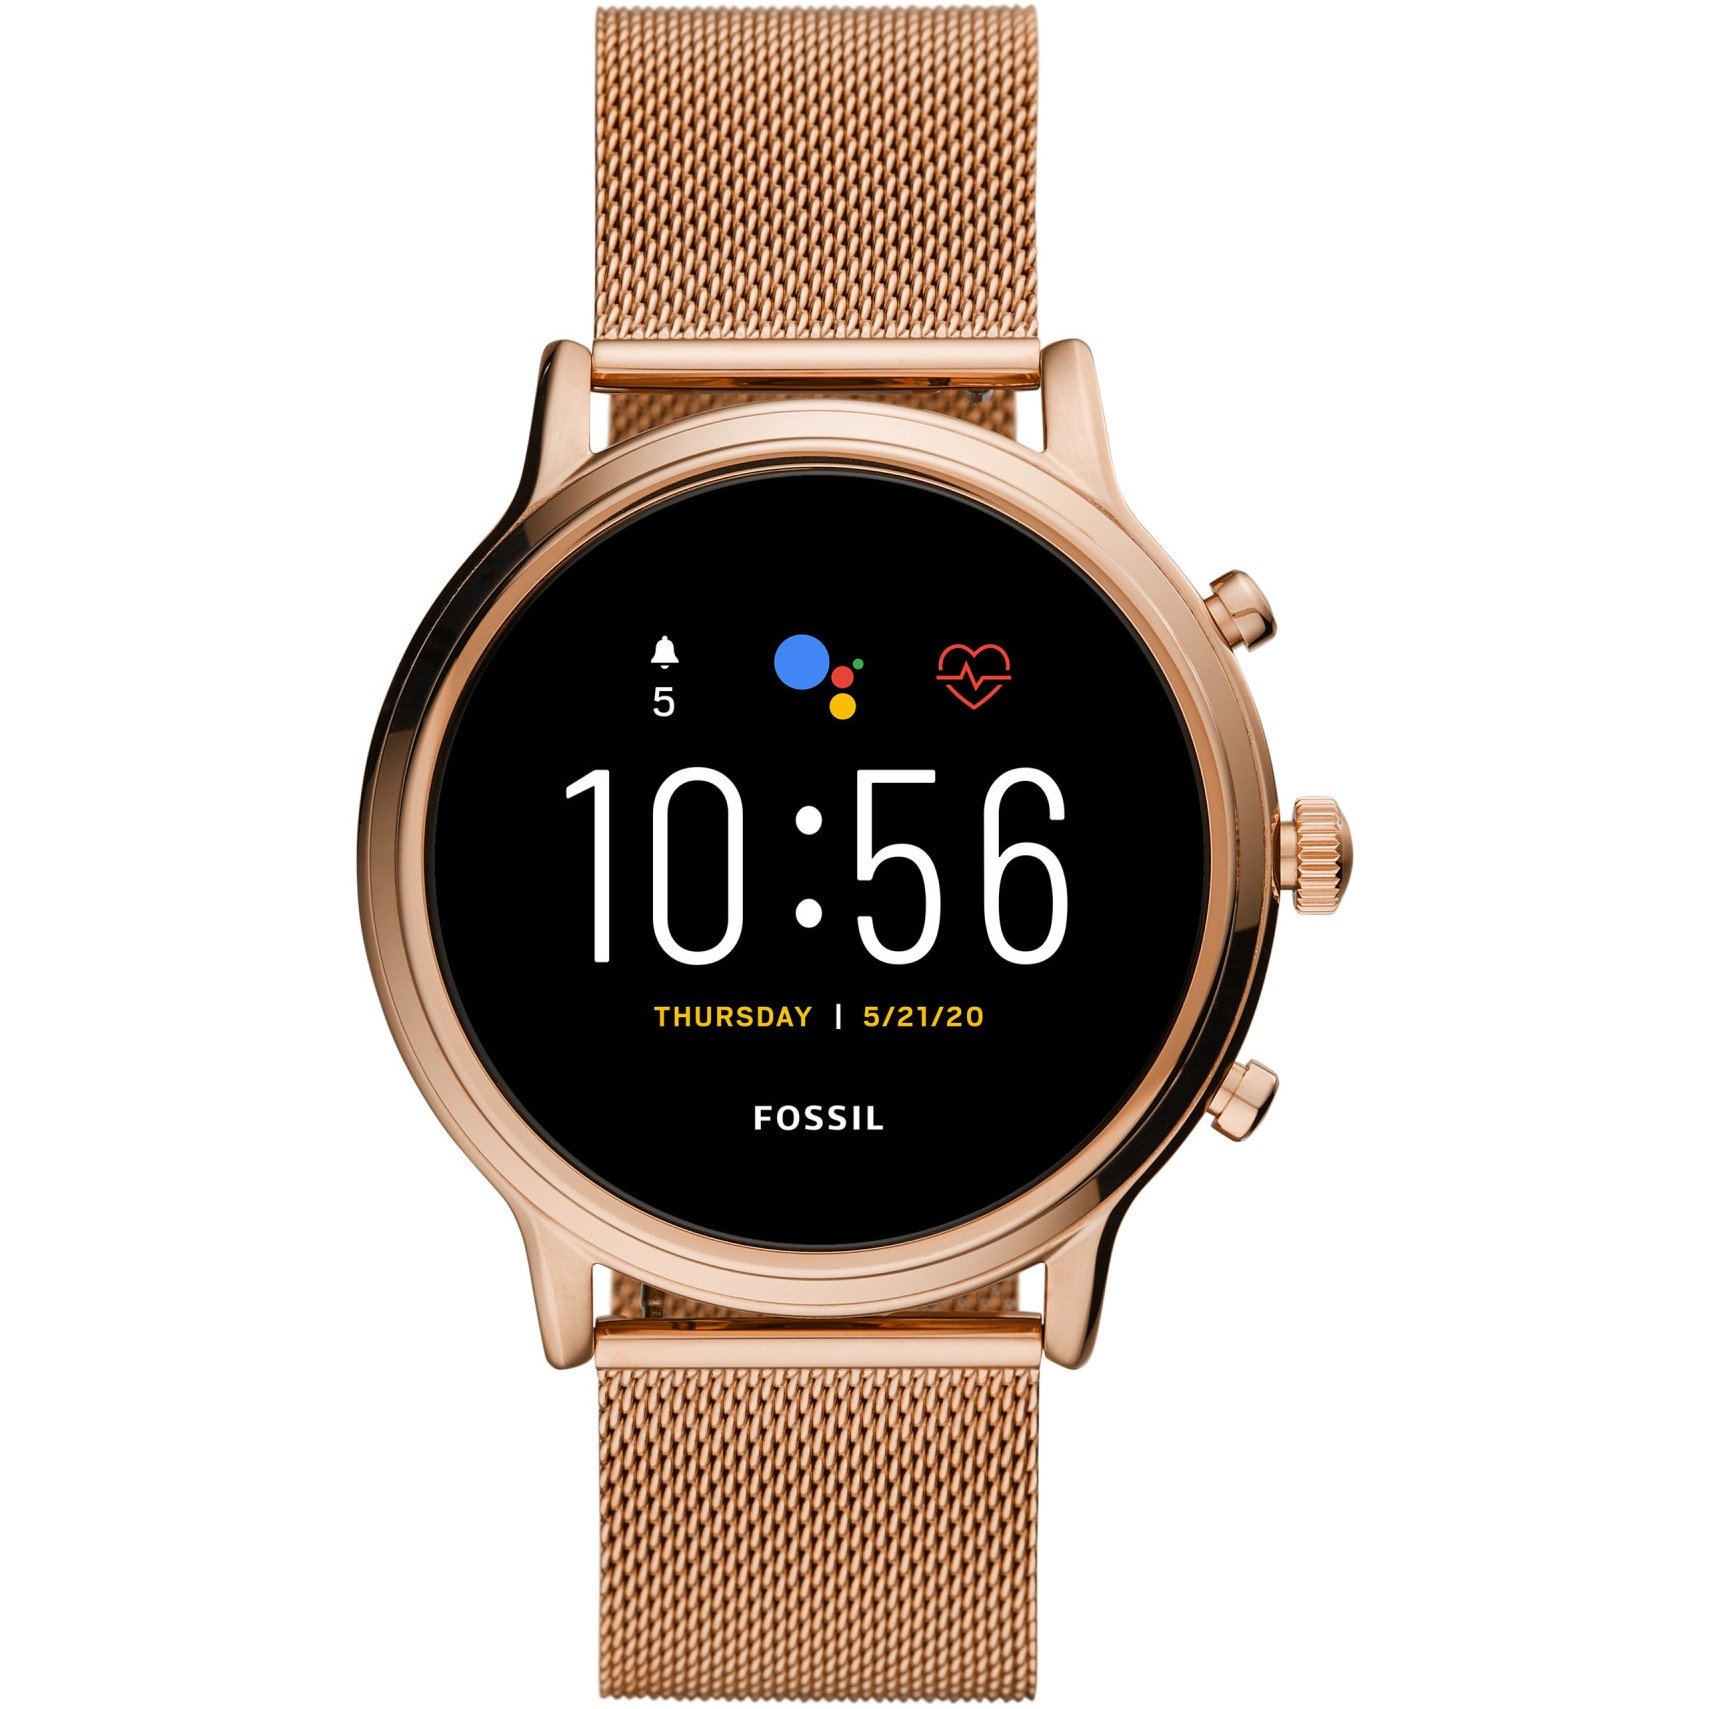 Fotografie Ceas Smartwatch Fossil Julianna HR, Mesh, Gold/Steel